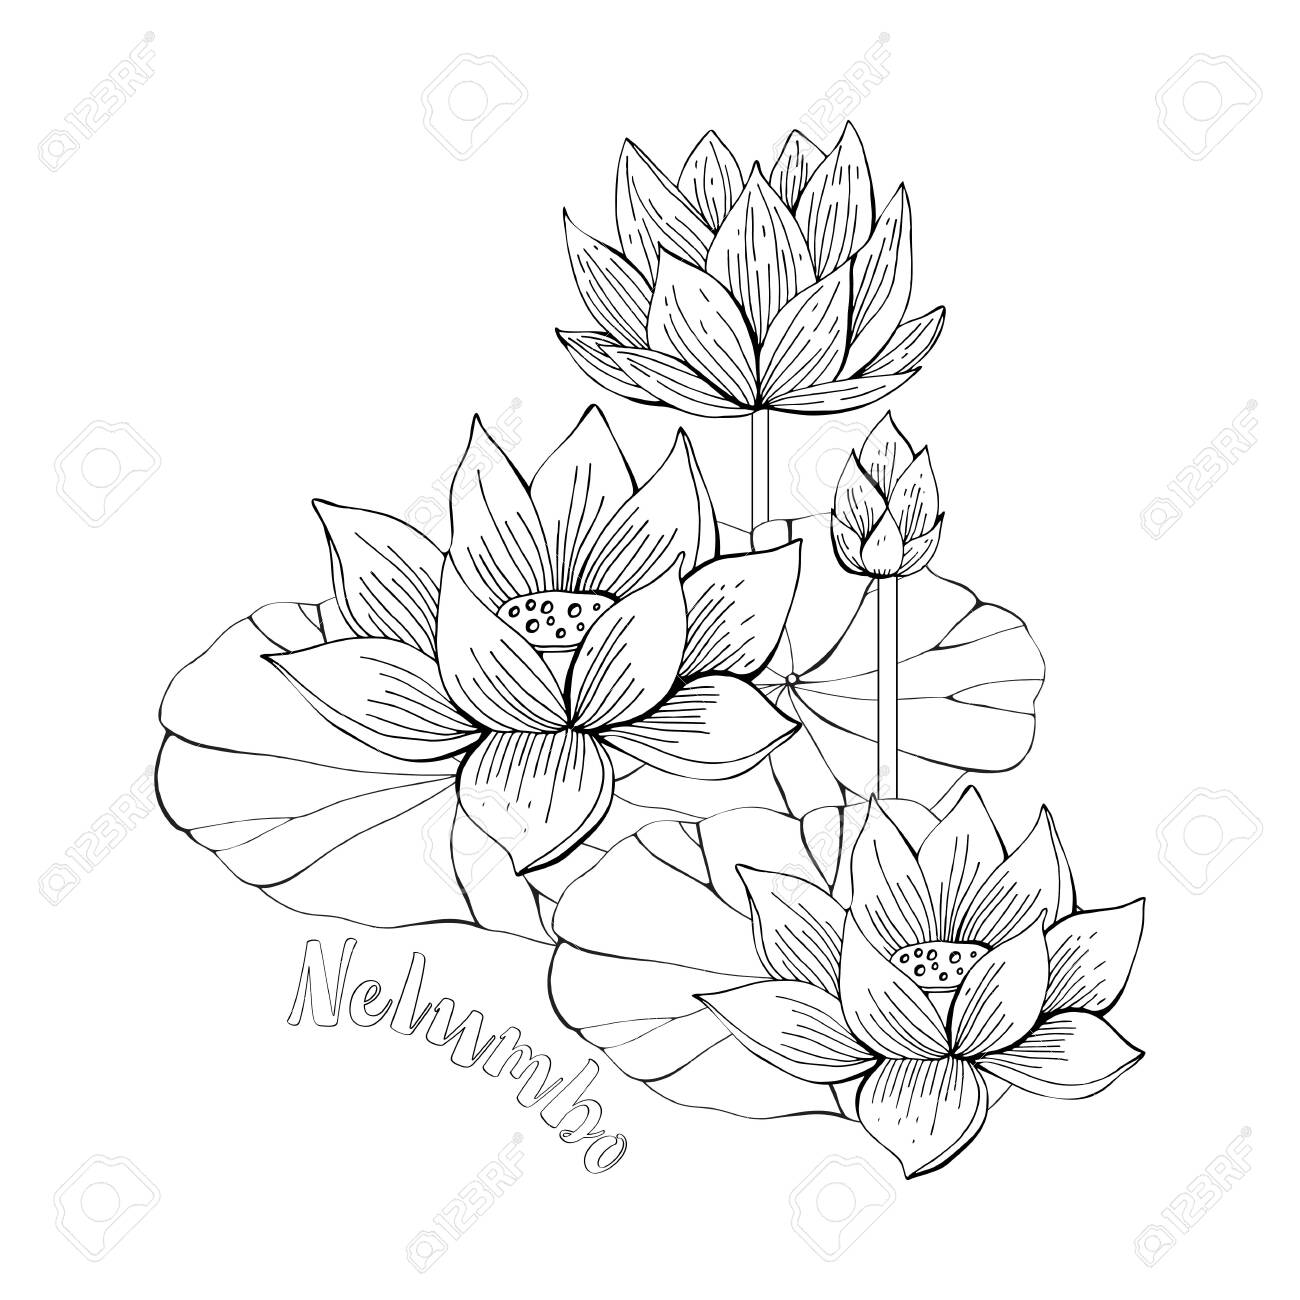 Coloring Pages With Lotus Flowers Zentangle Illustrations For